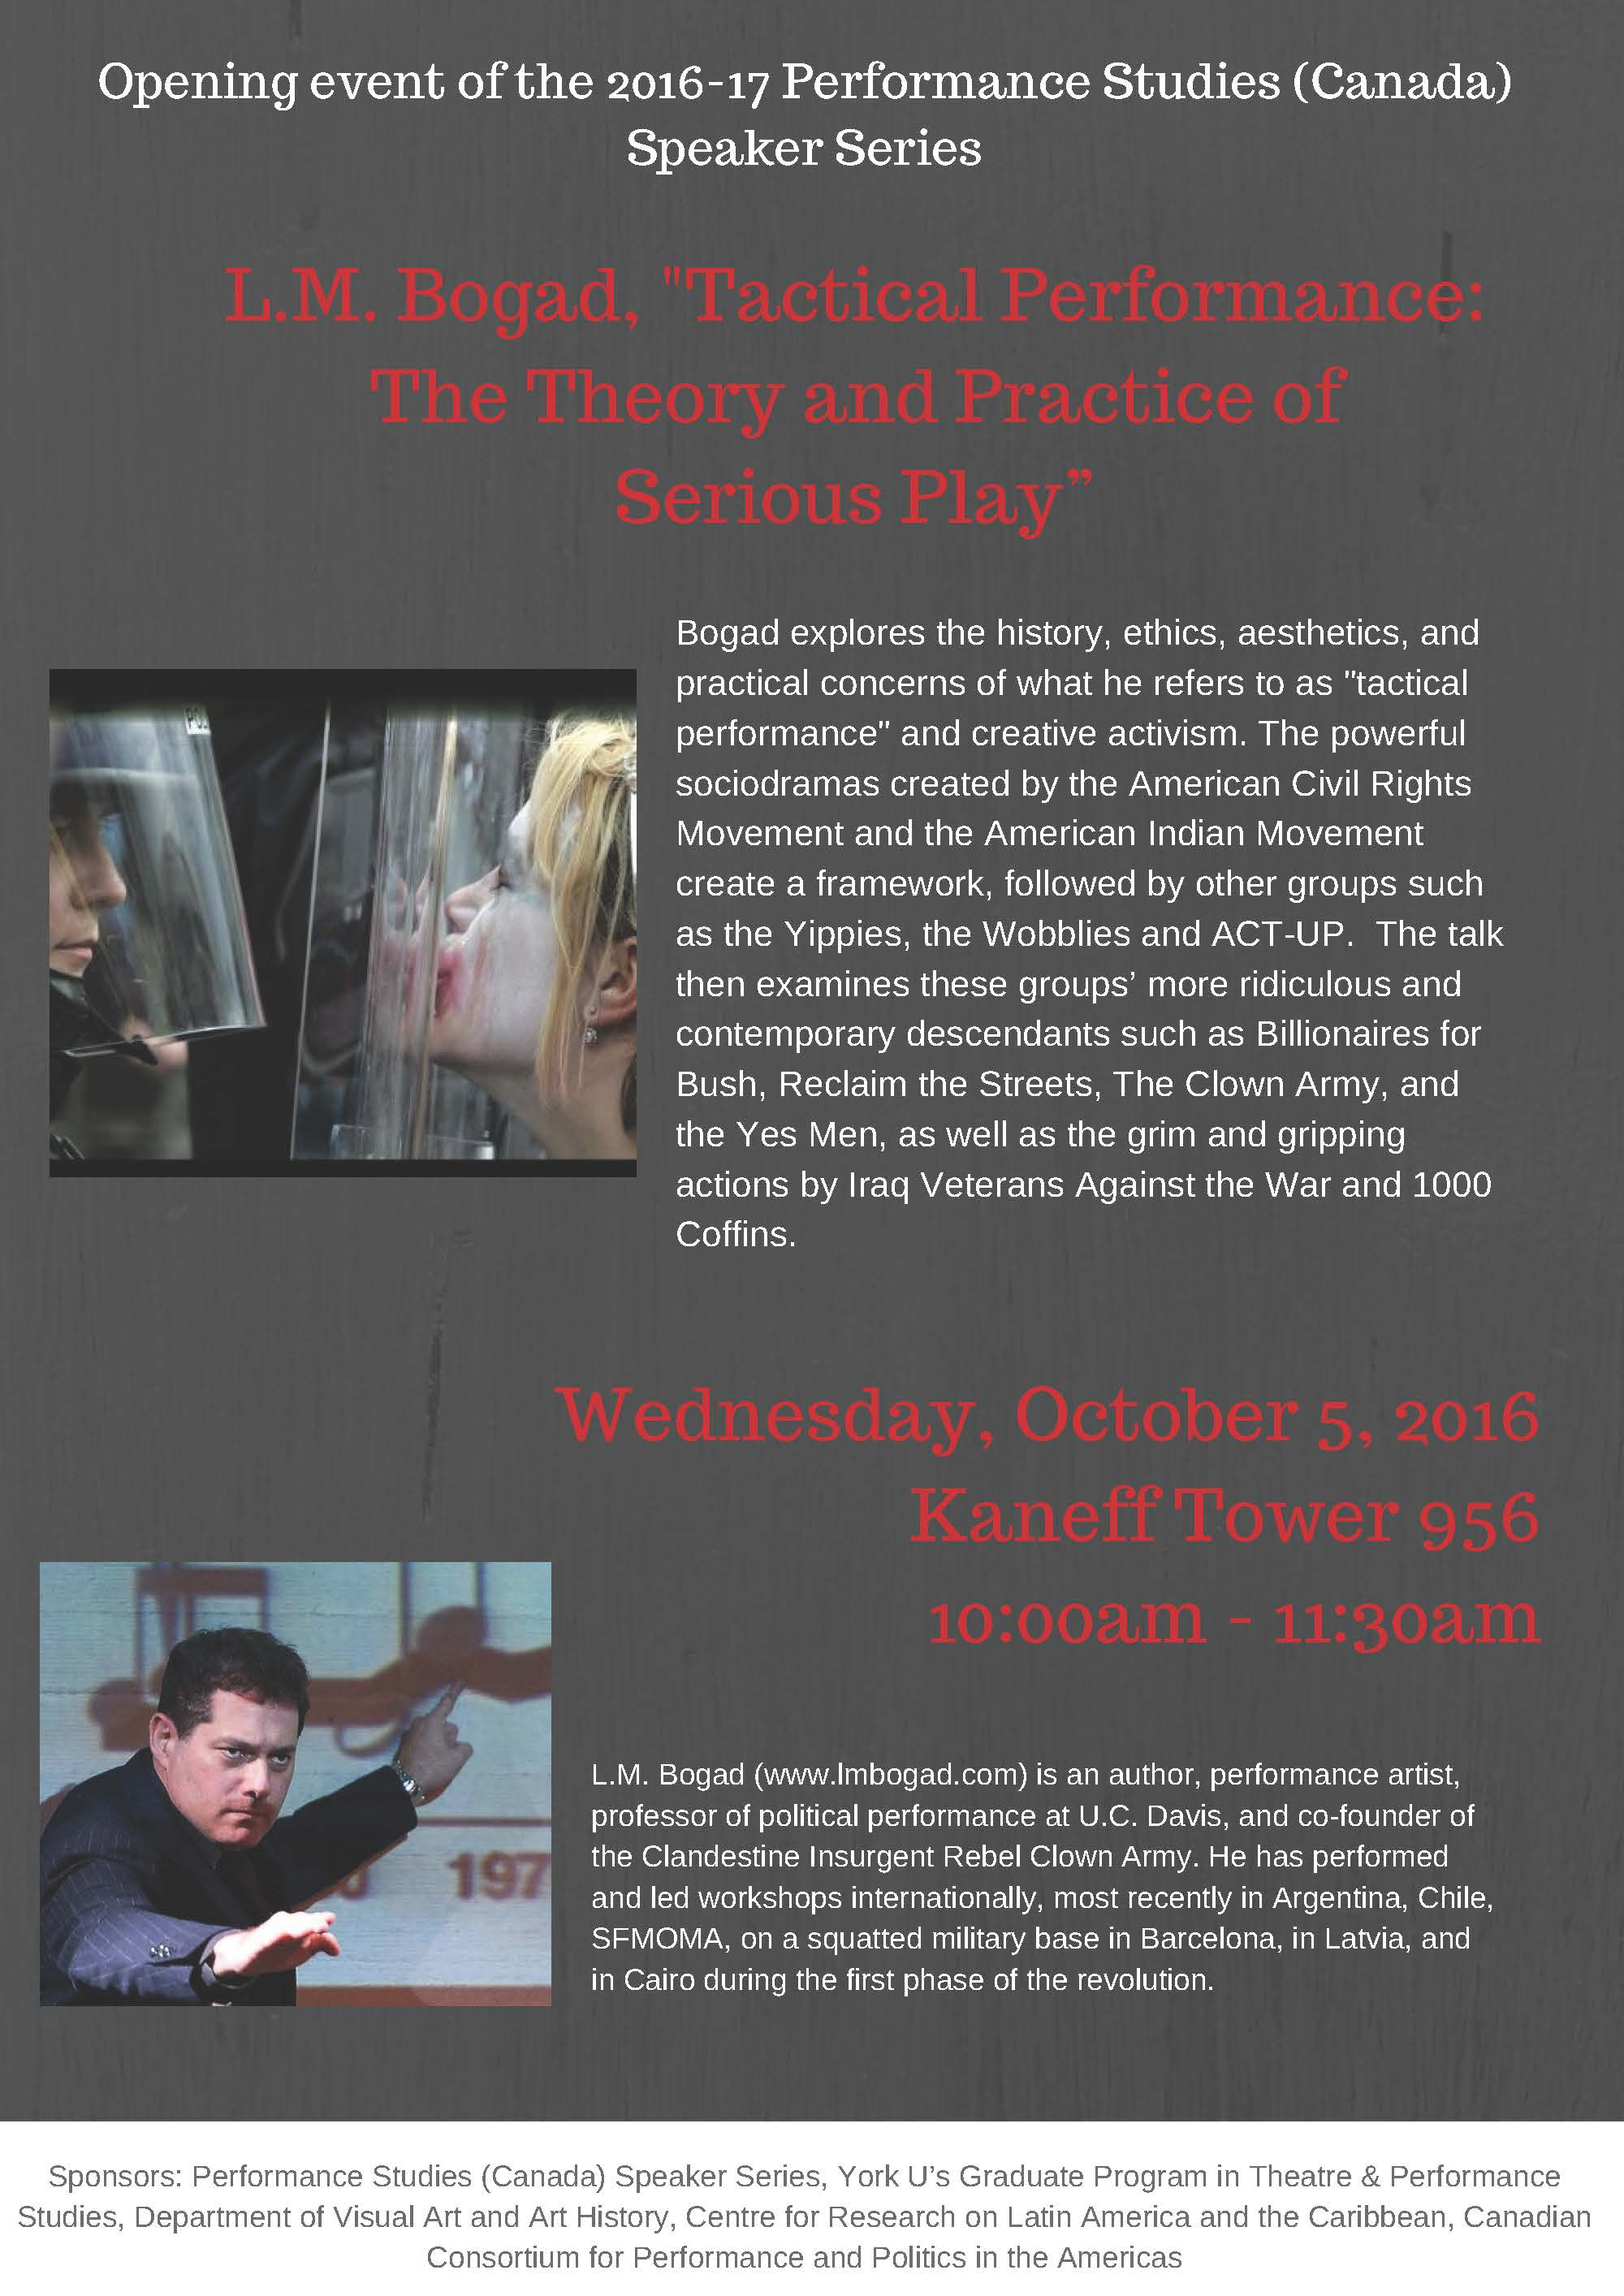 "L.M. Bogard, ""Tactical Performances: The Theory and Practice of Serious Play"". @ Kaneff Tower Room 956 (NinthFloor)"